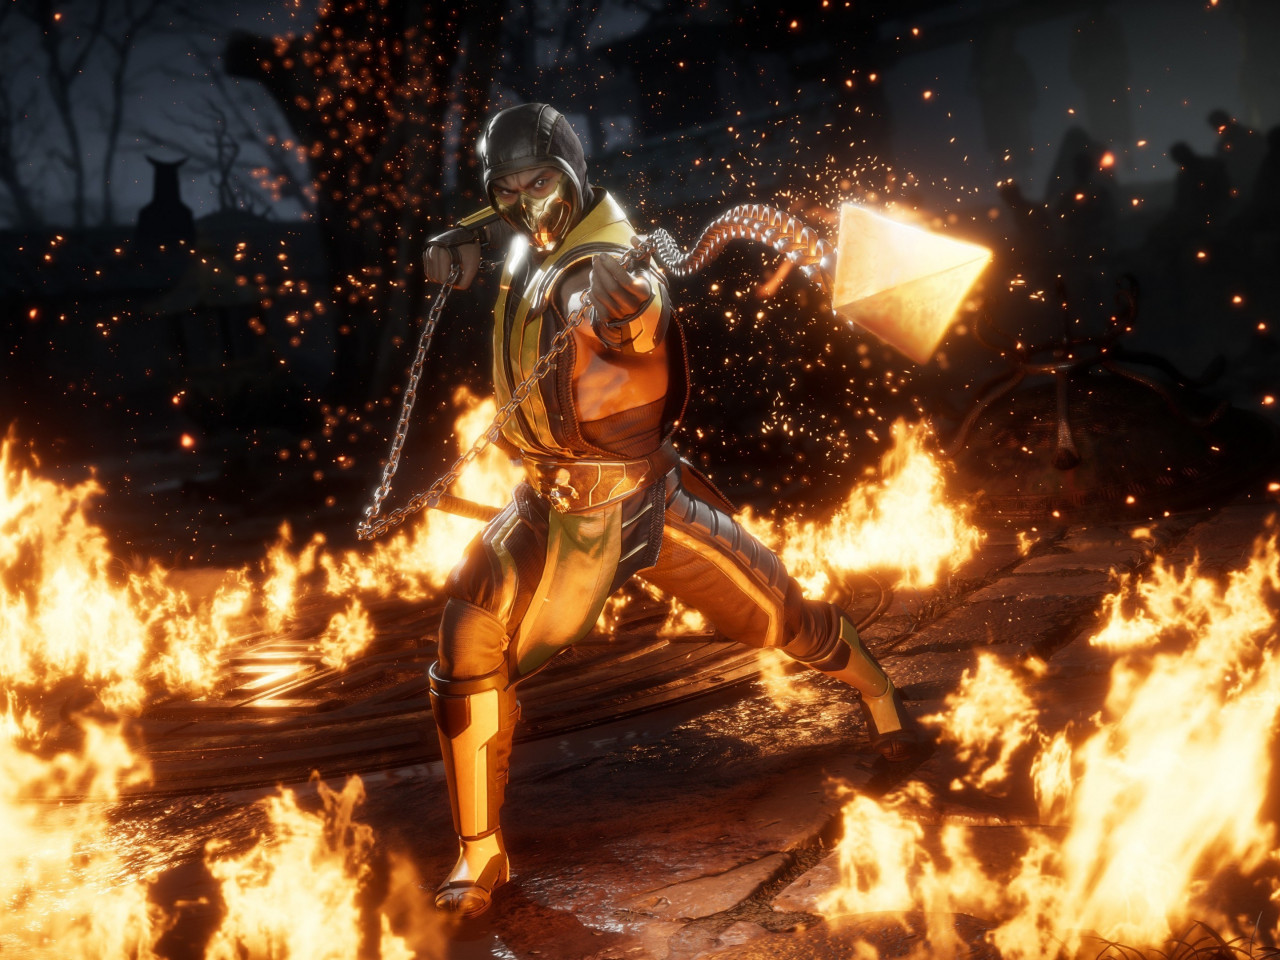 Mortal Kombat 11 Scorpion wallpaper 1280x960